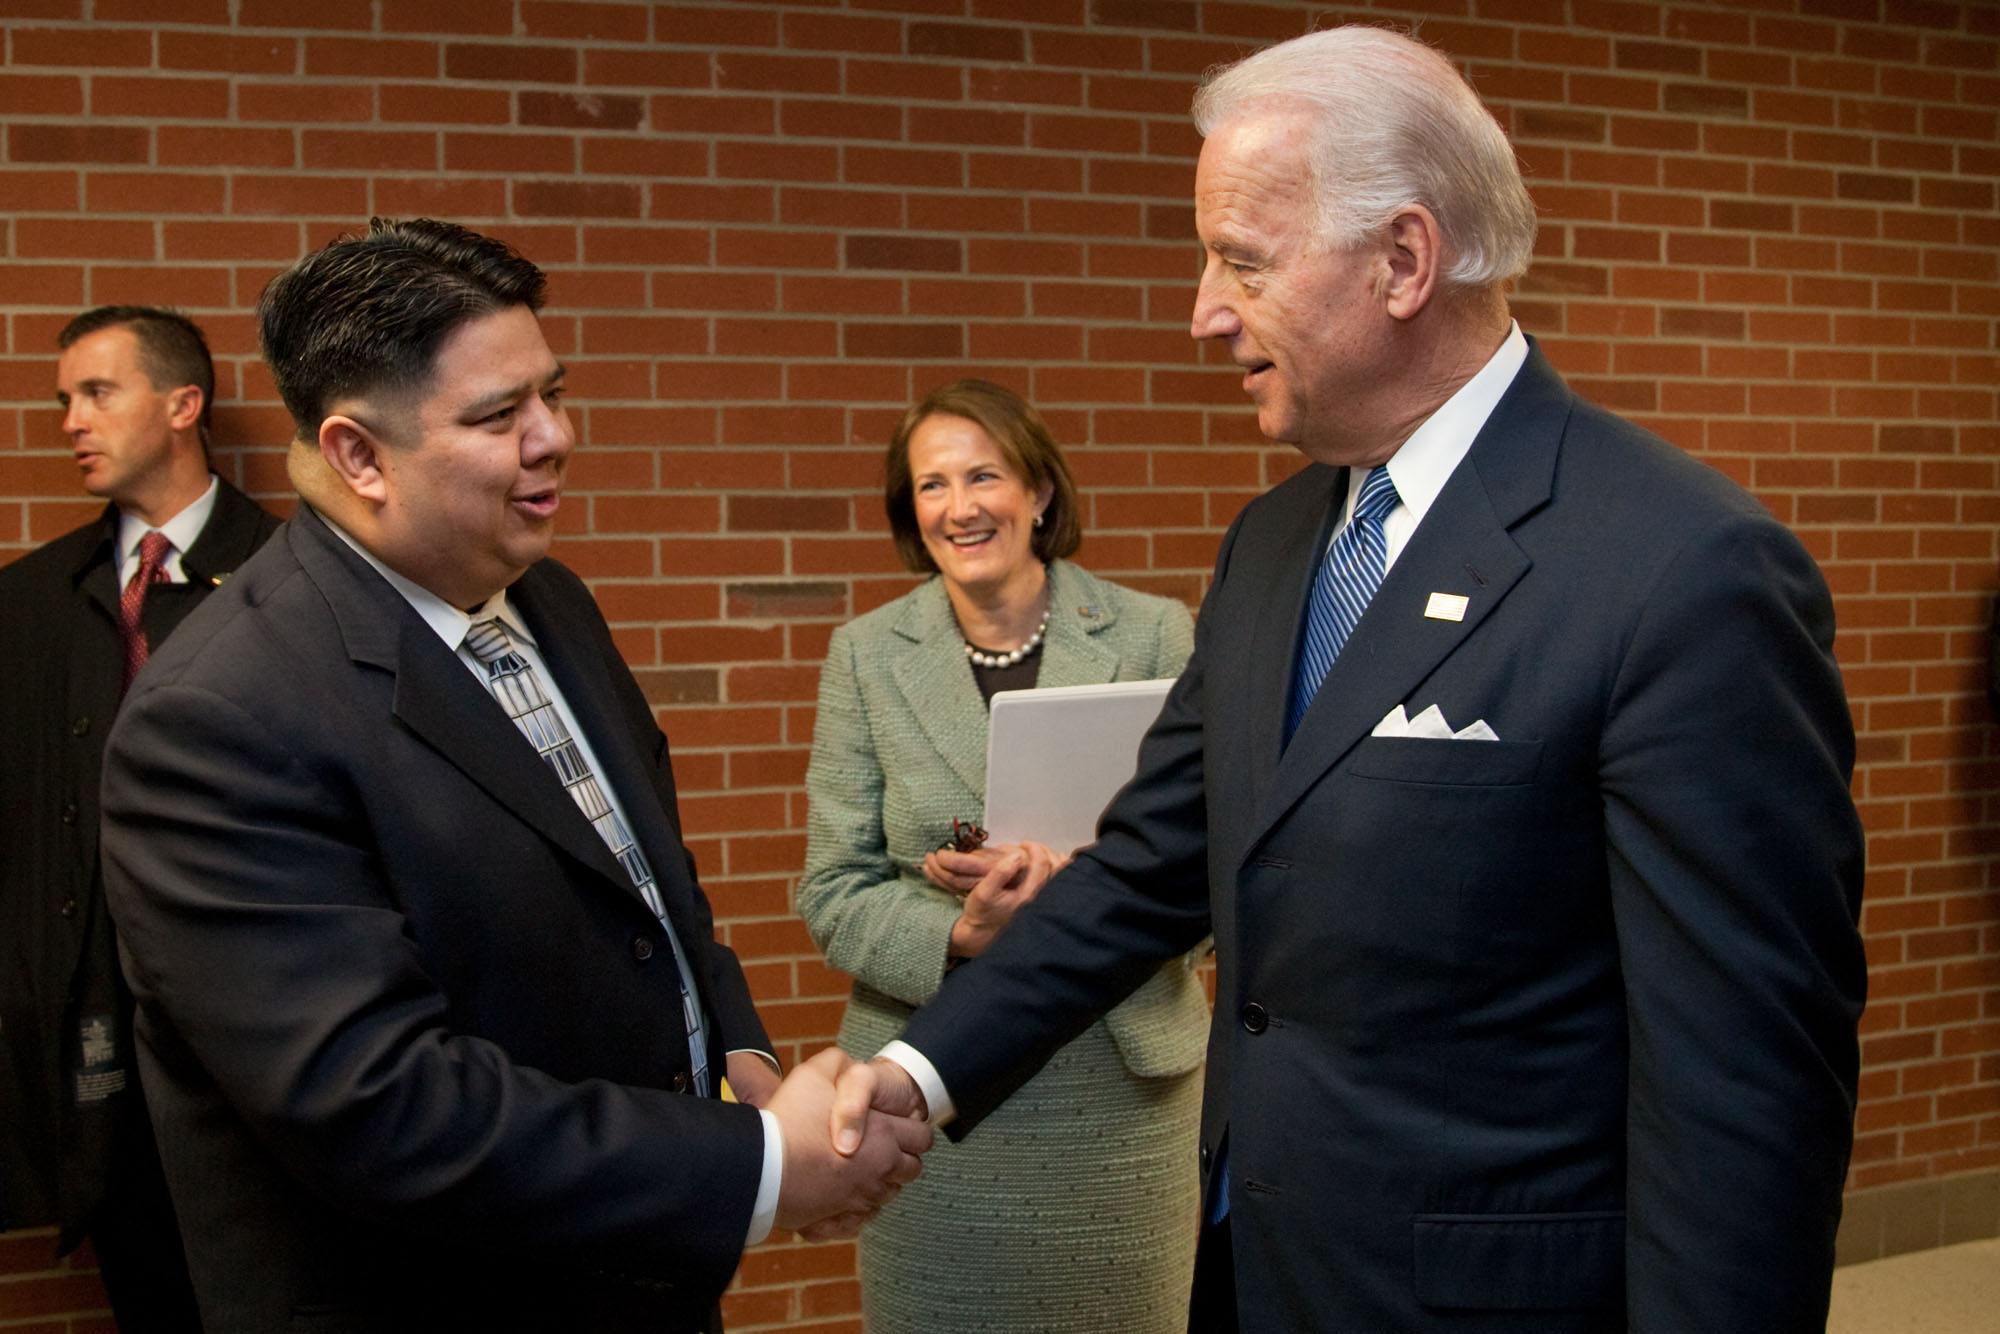 Vice President Biden Shakes Hands in Saginaw, Michigan